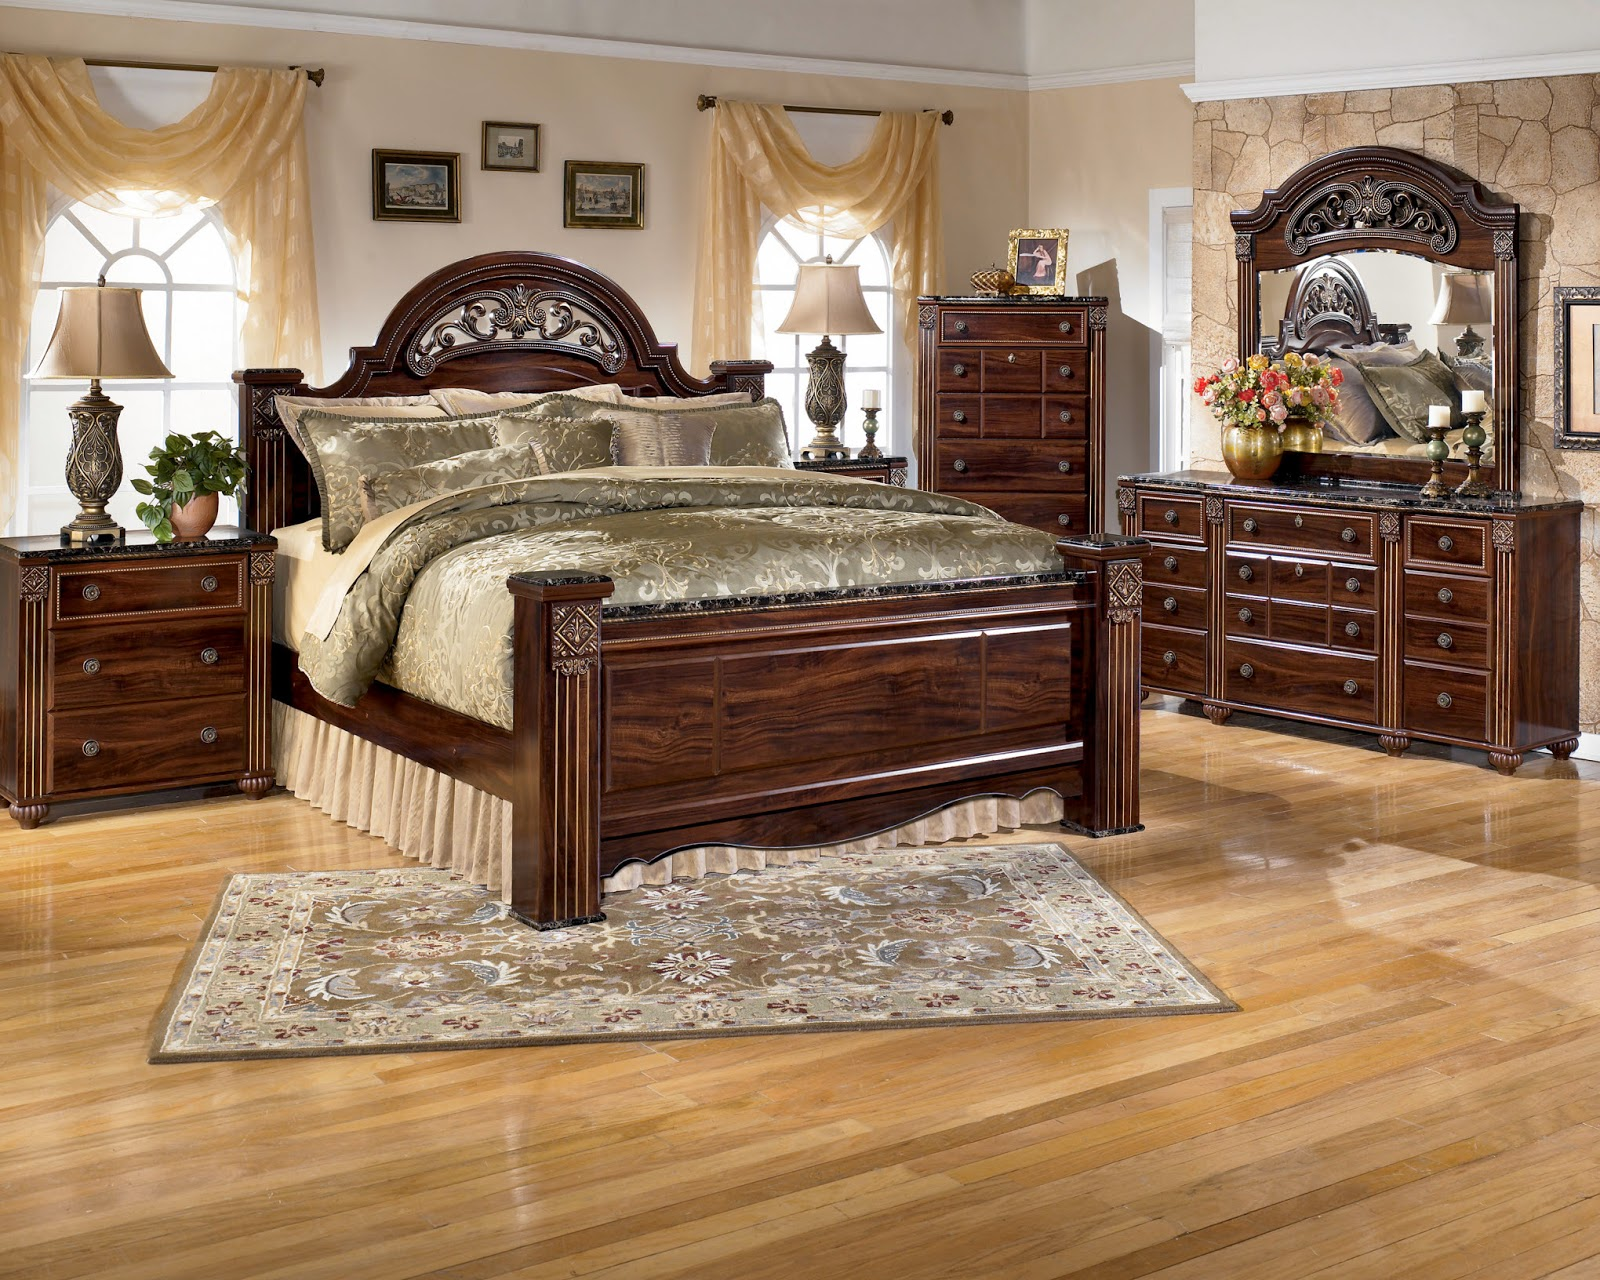 ashley furniture bedroom sets on sale popular interior